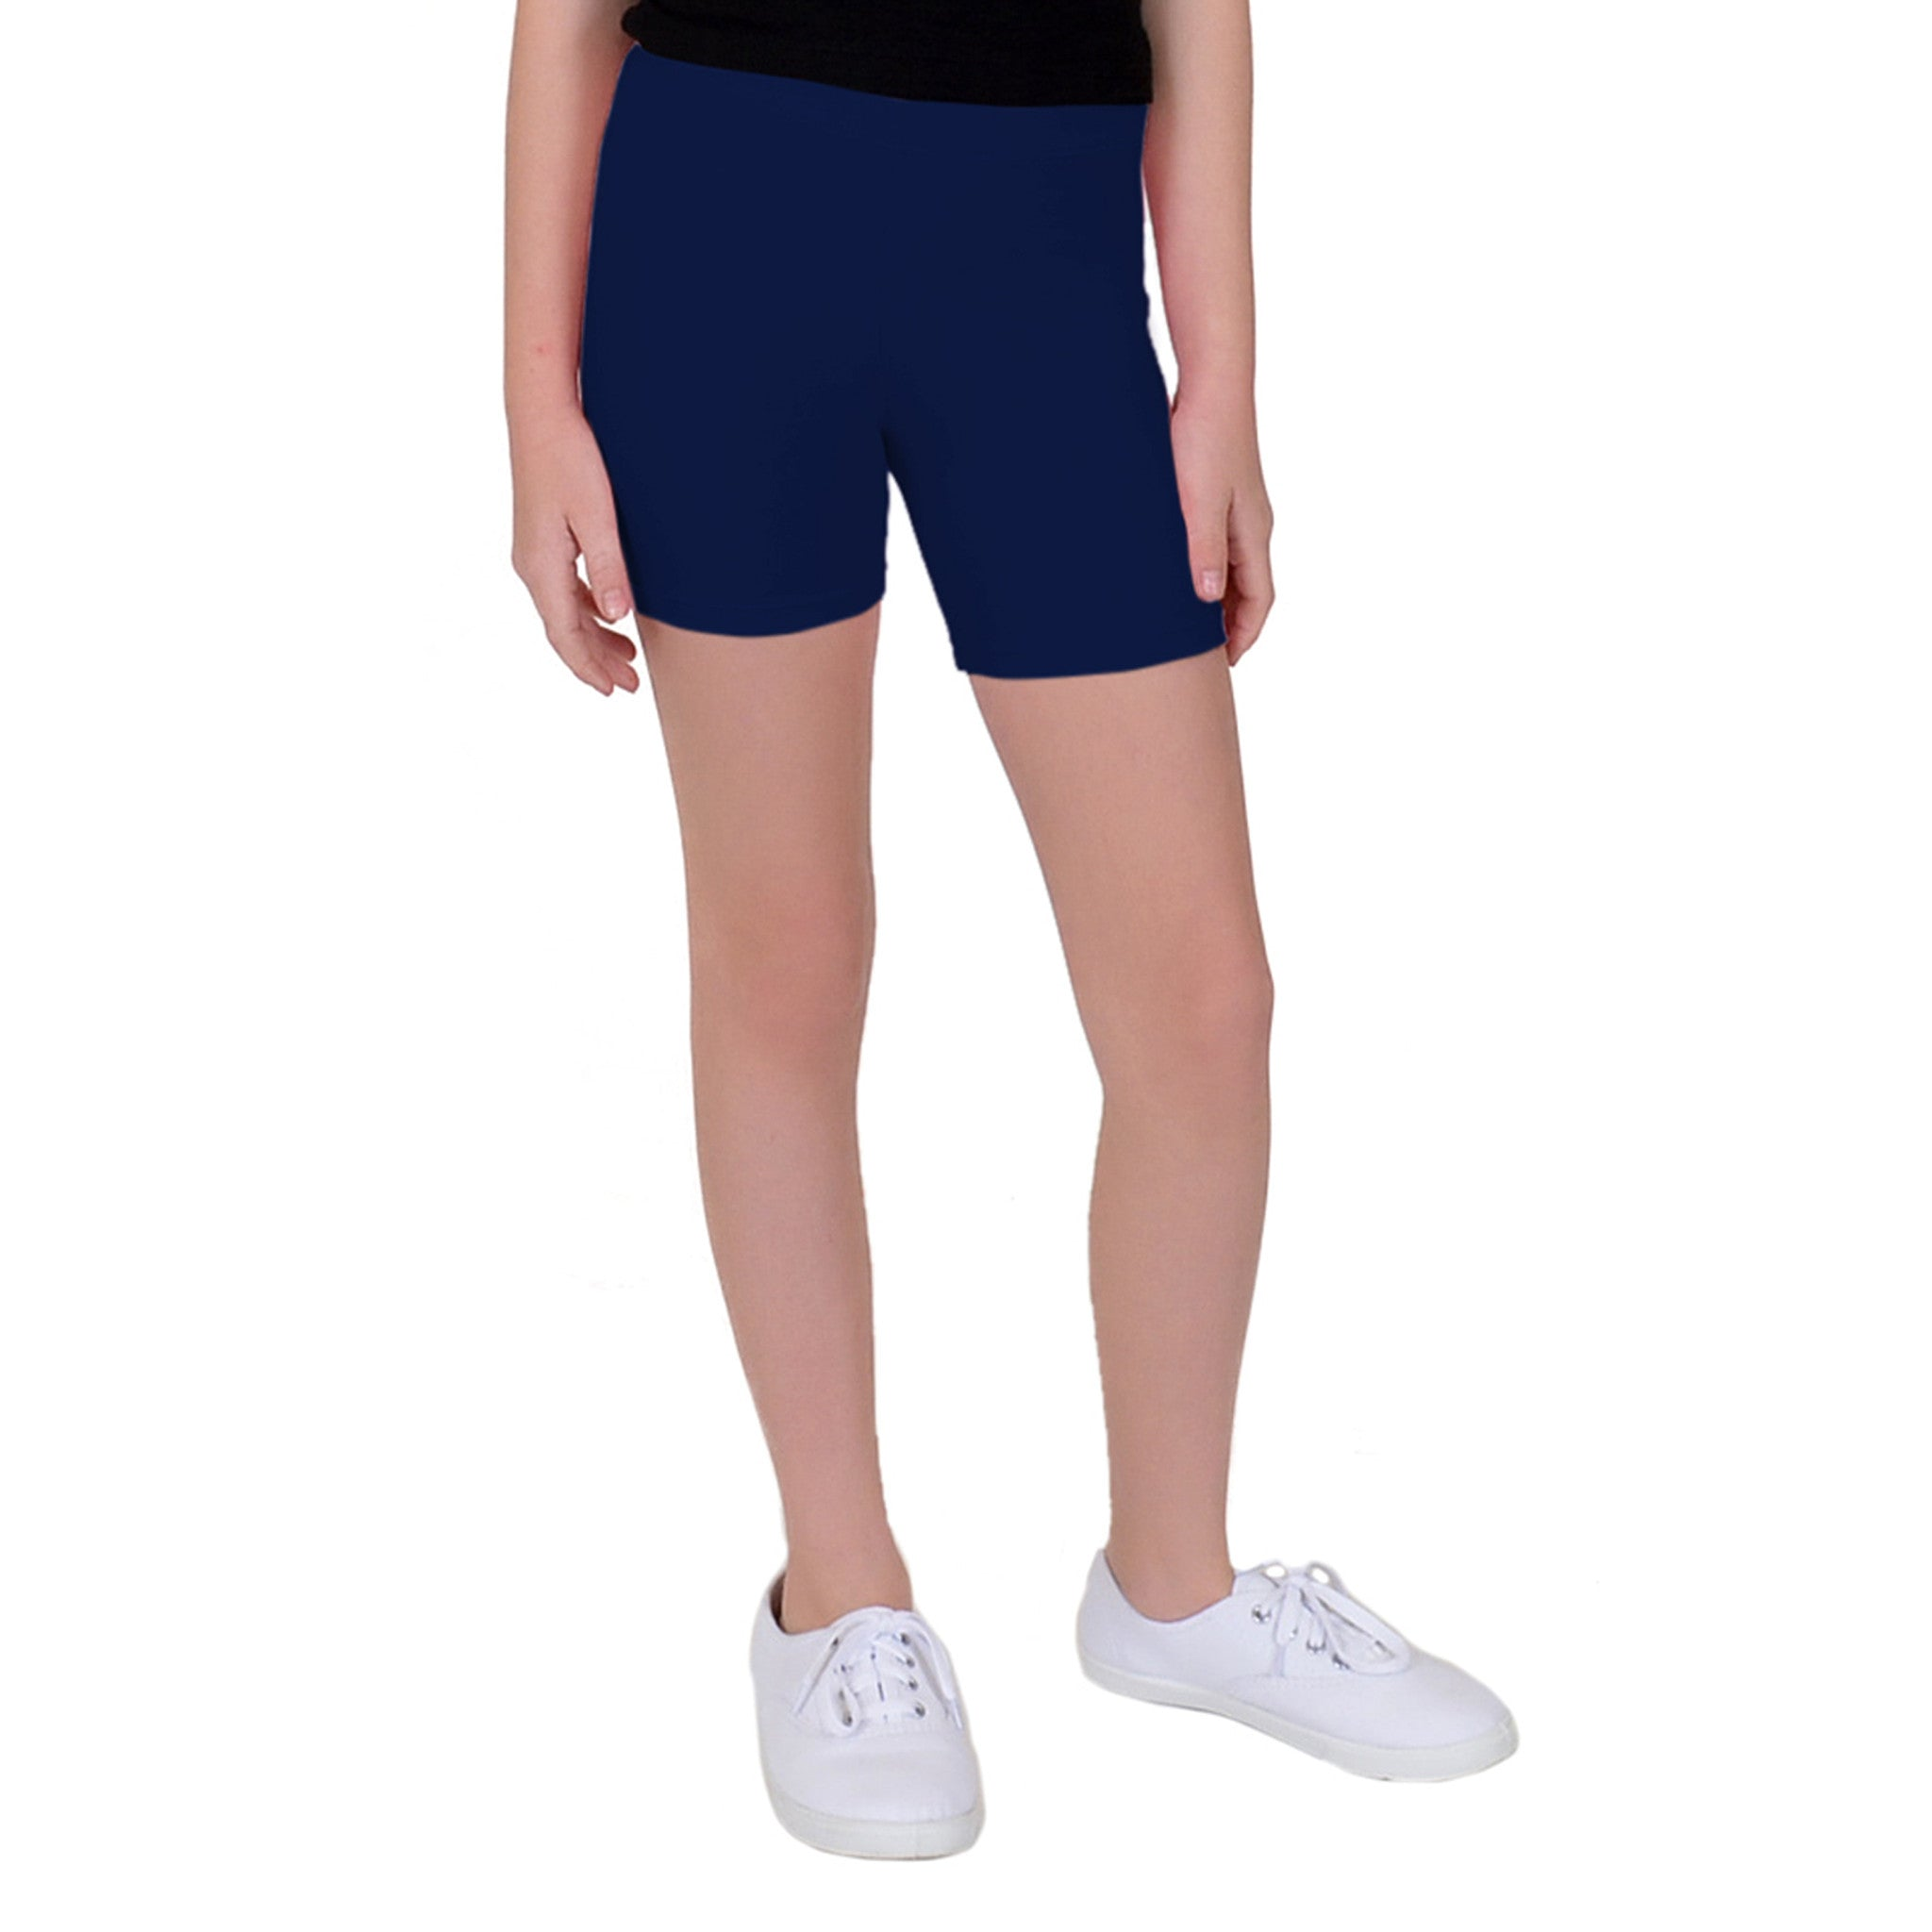 Teamwear Cotton Biker Shorts 2